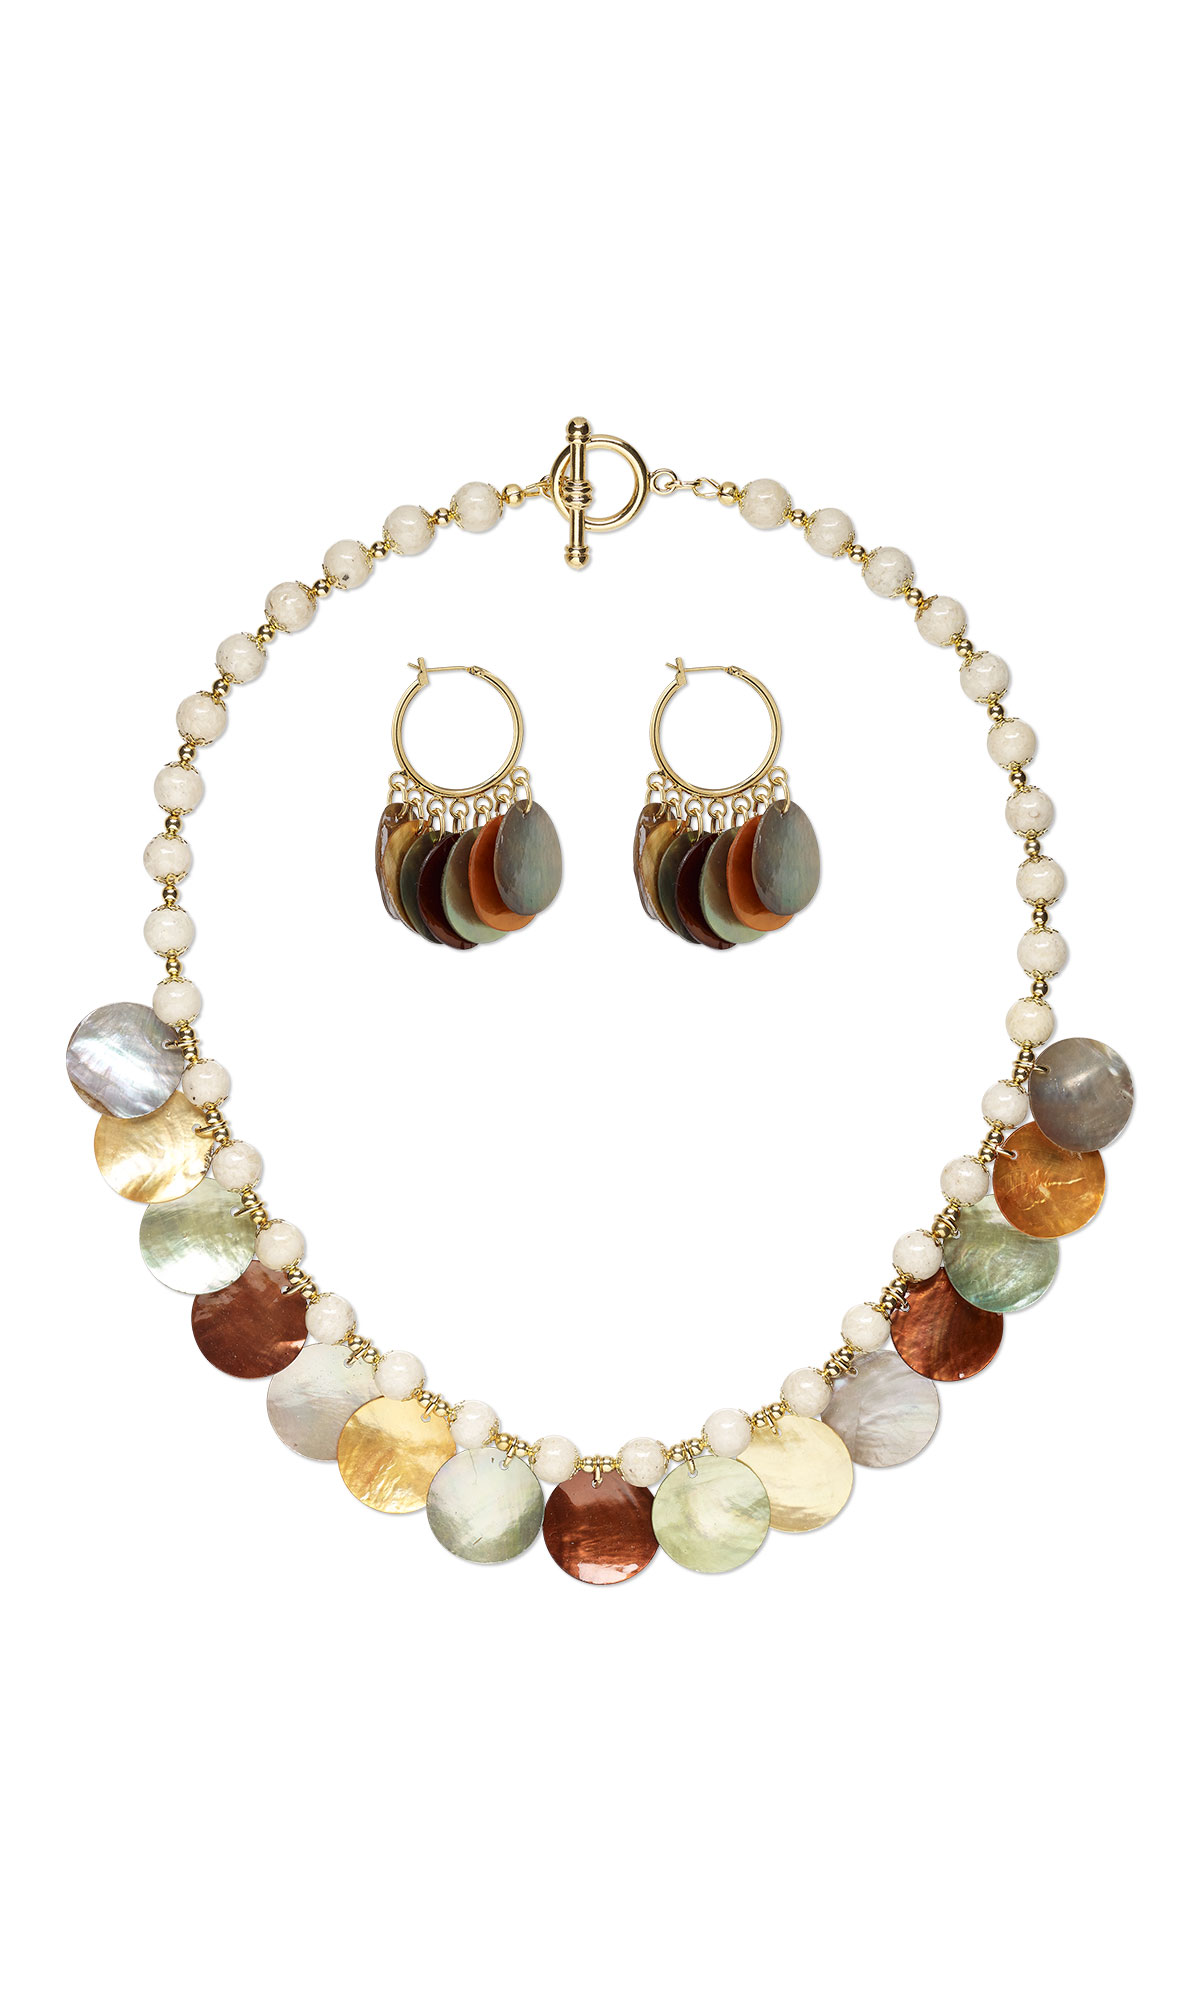 jewelry design single strand necklace and earring set with mussel